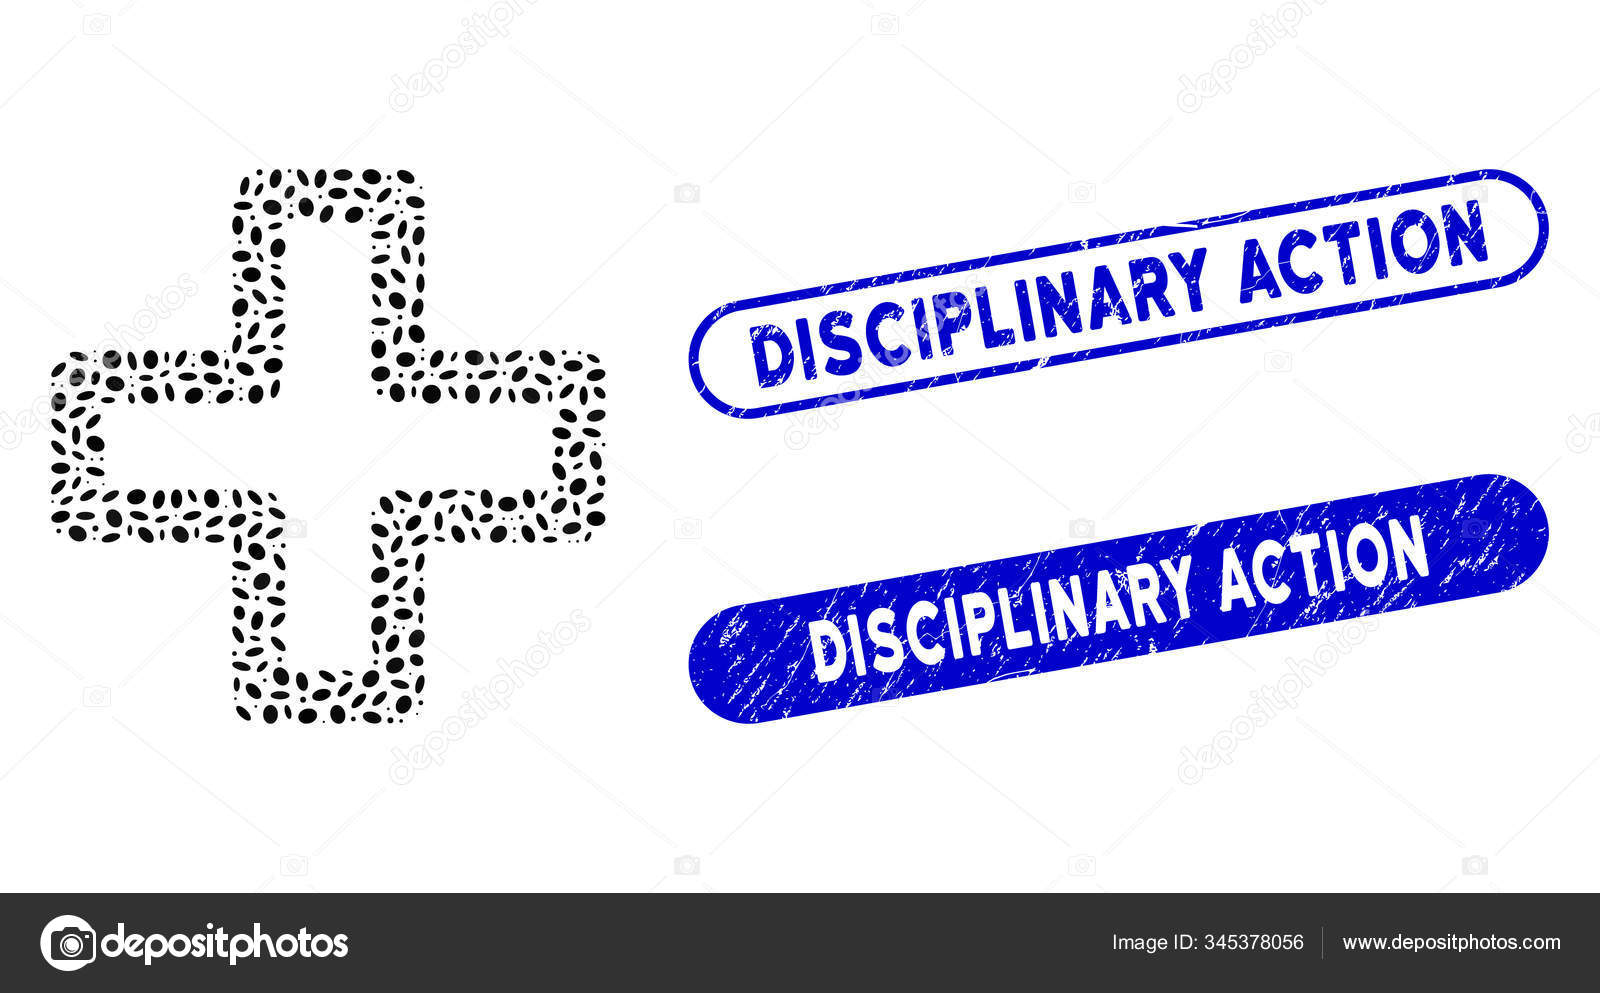 Disciplinary action Stock Illustration Images. 105 Disciplinary action  illustrations available to search from thousands of royalty free EPS vector clip  art graphics image creators.